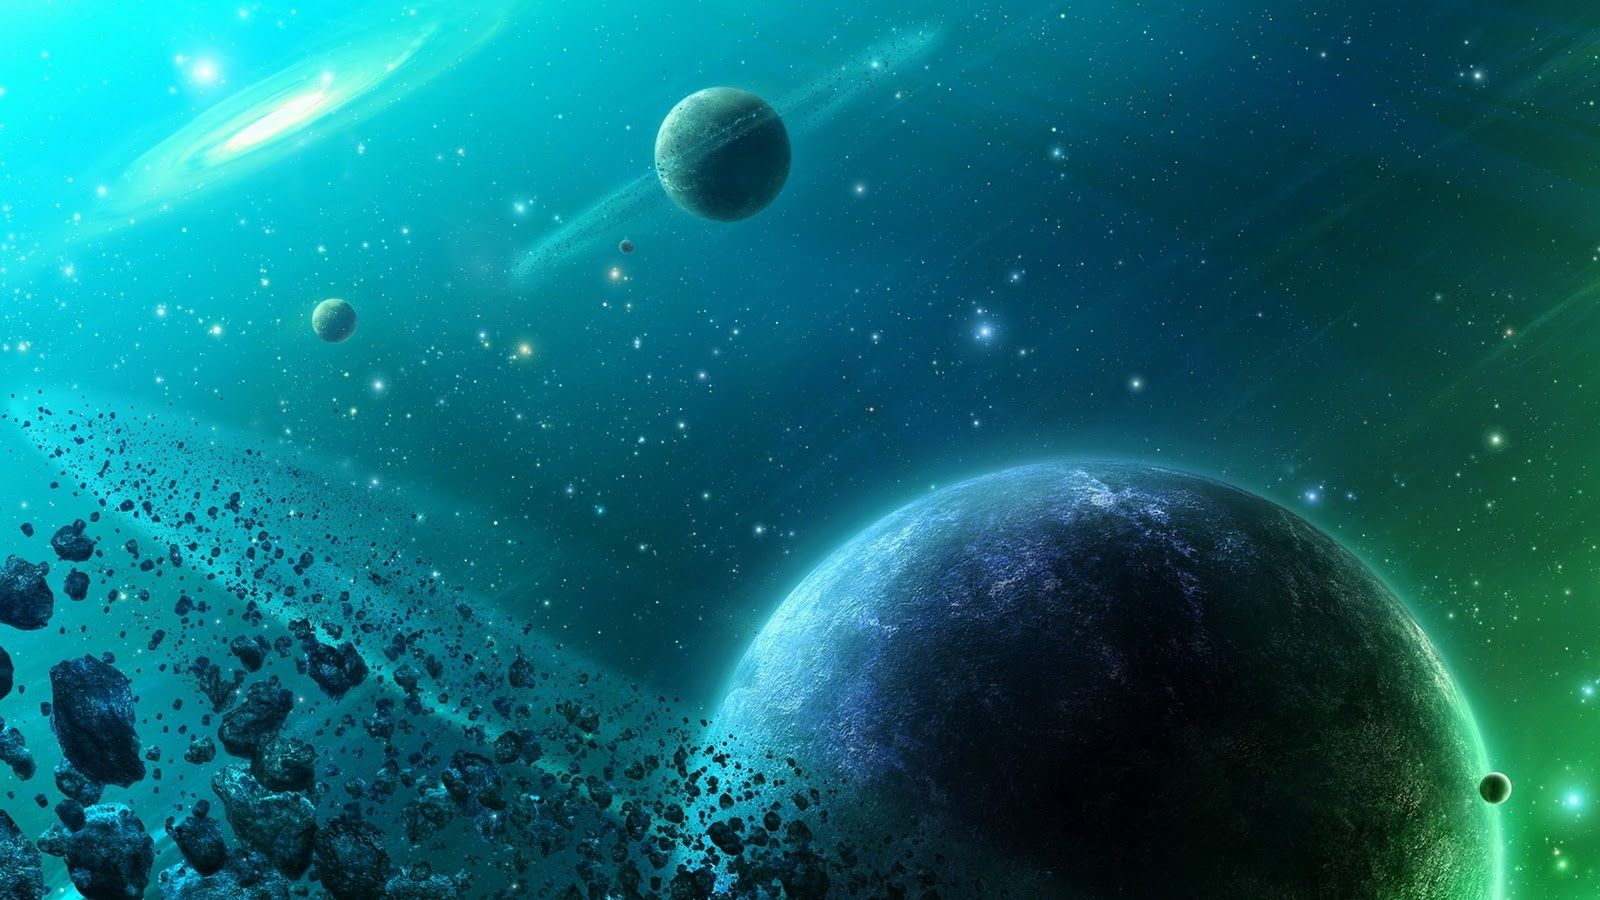 3D Space HD Desktop Wallpapers Stars &